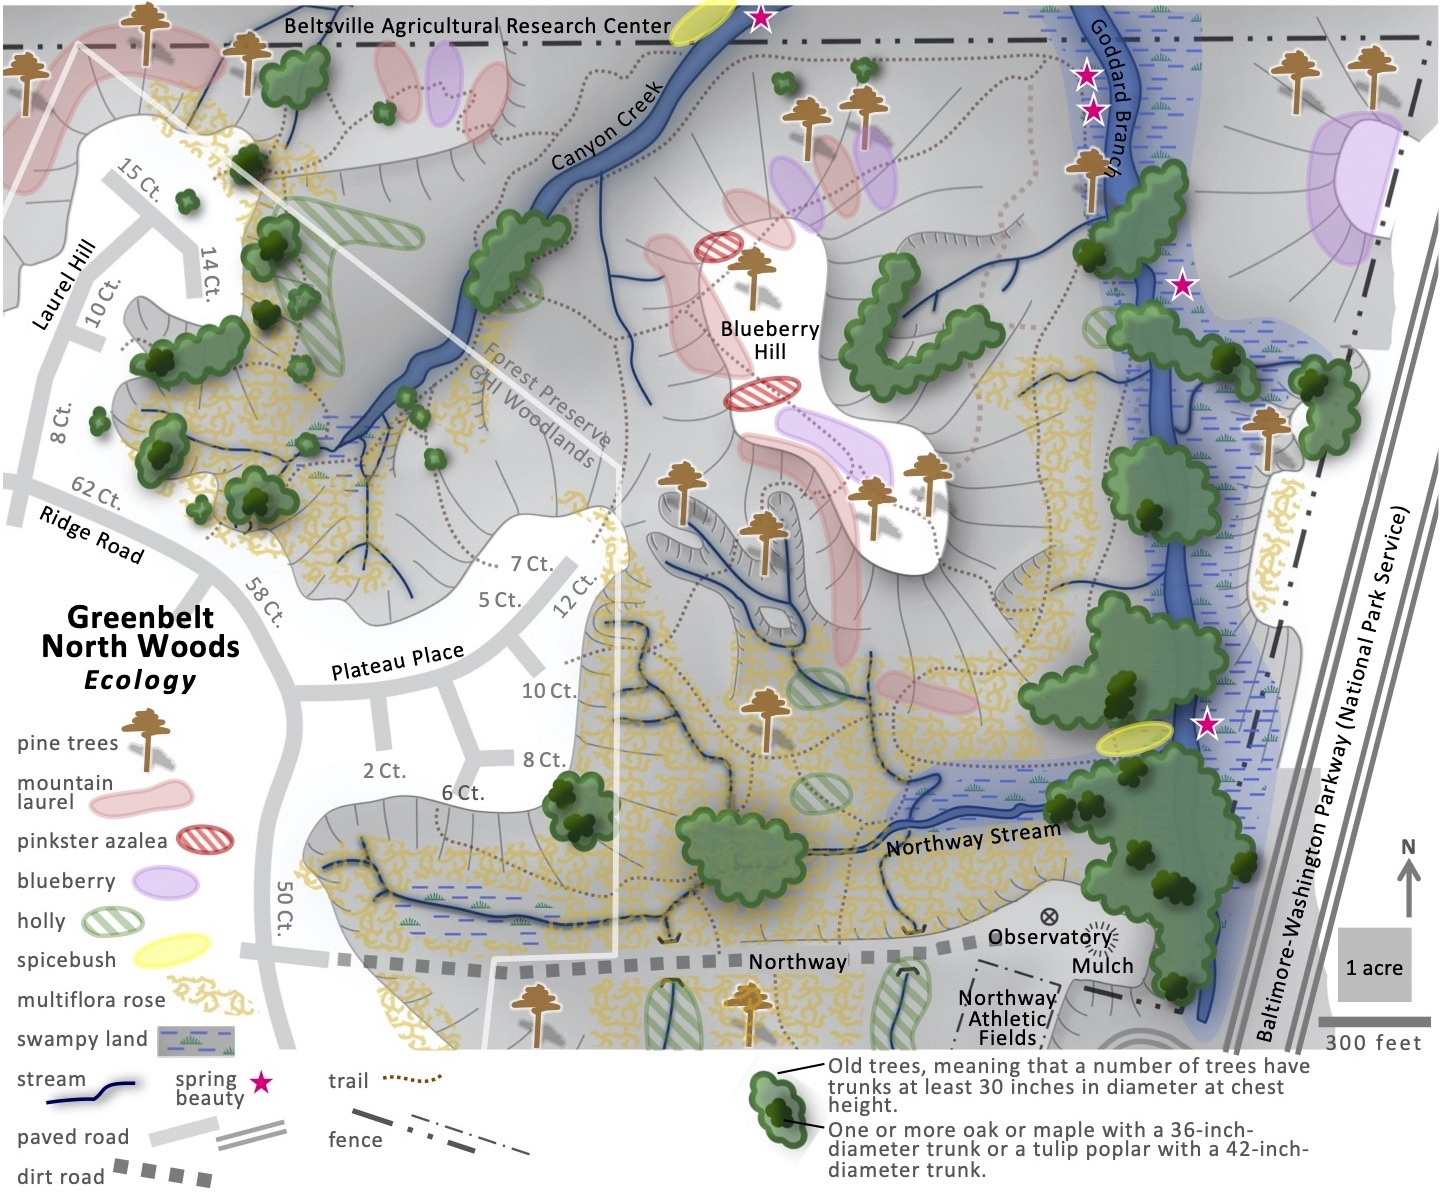 Map of the ecology of Greenbelt's North Woods